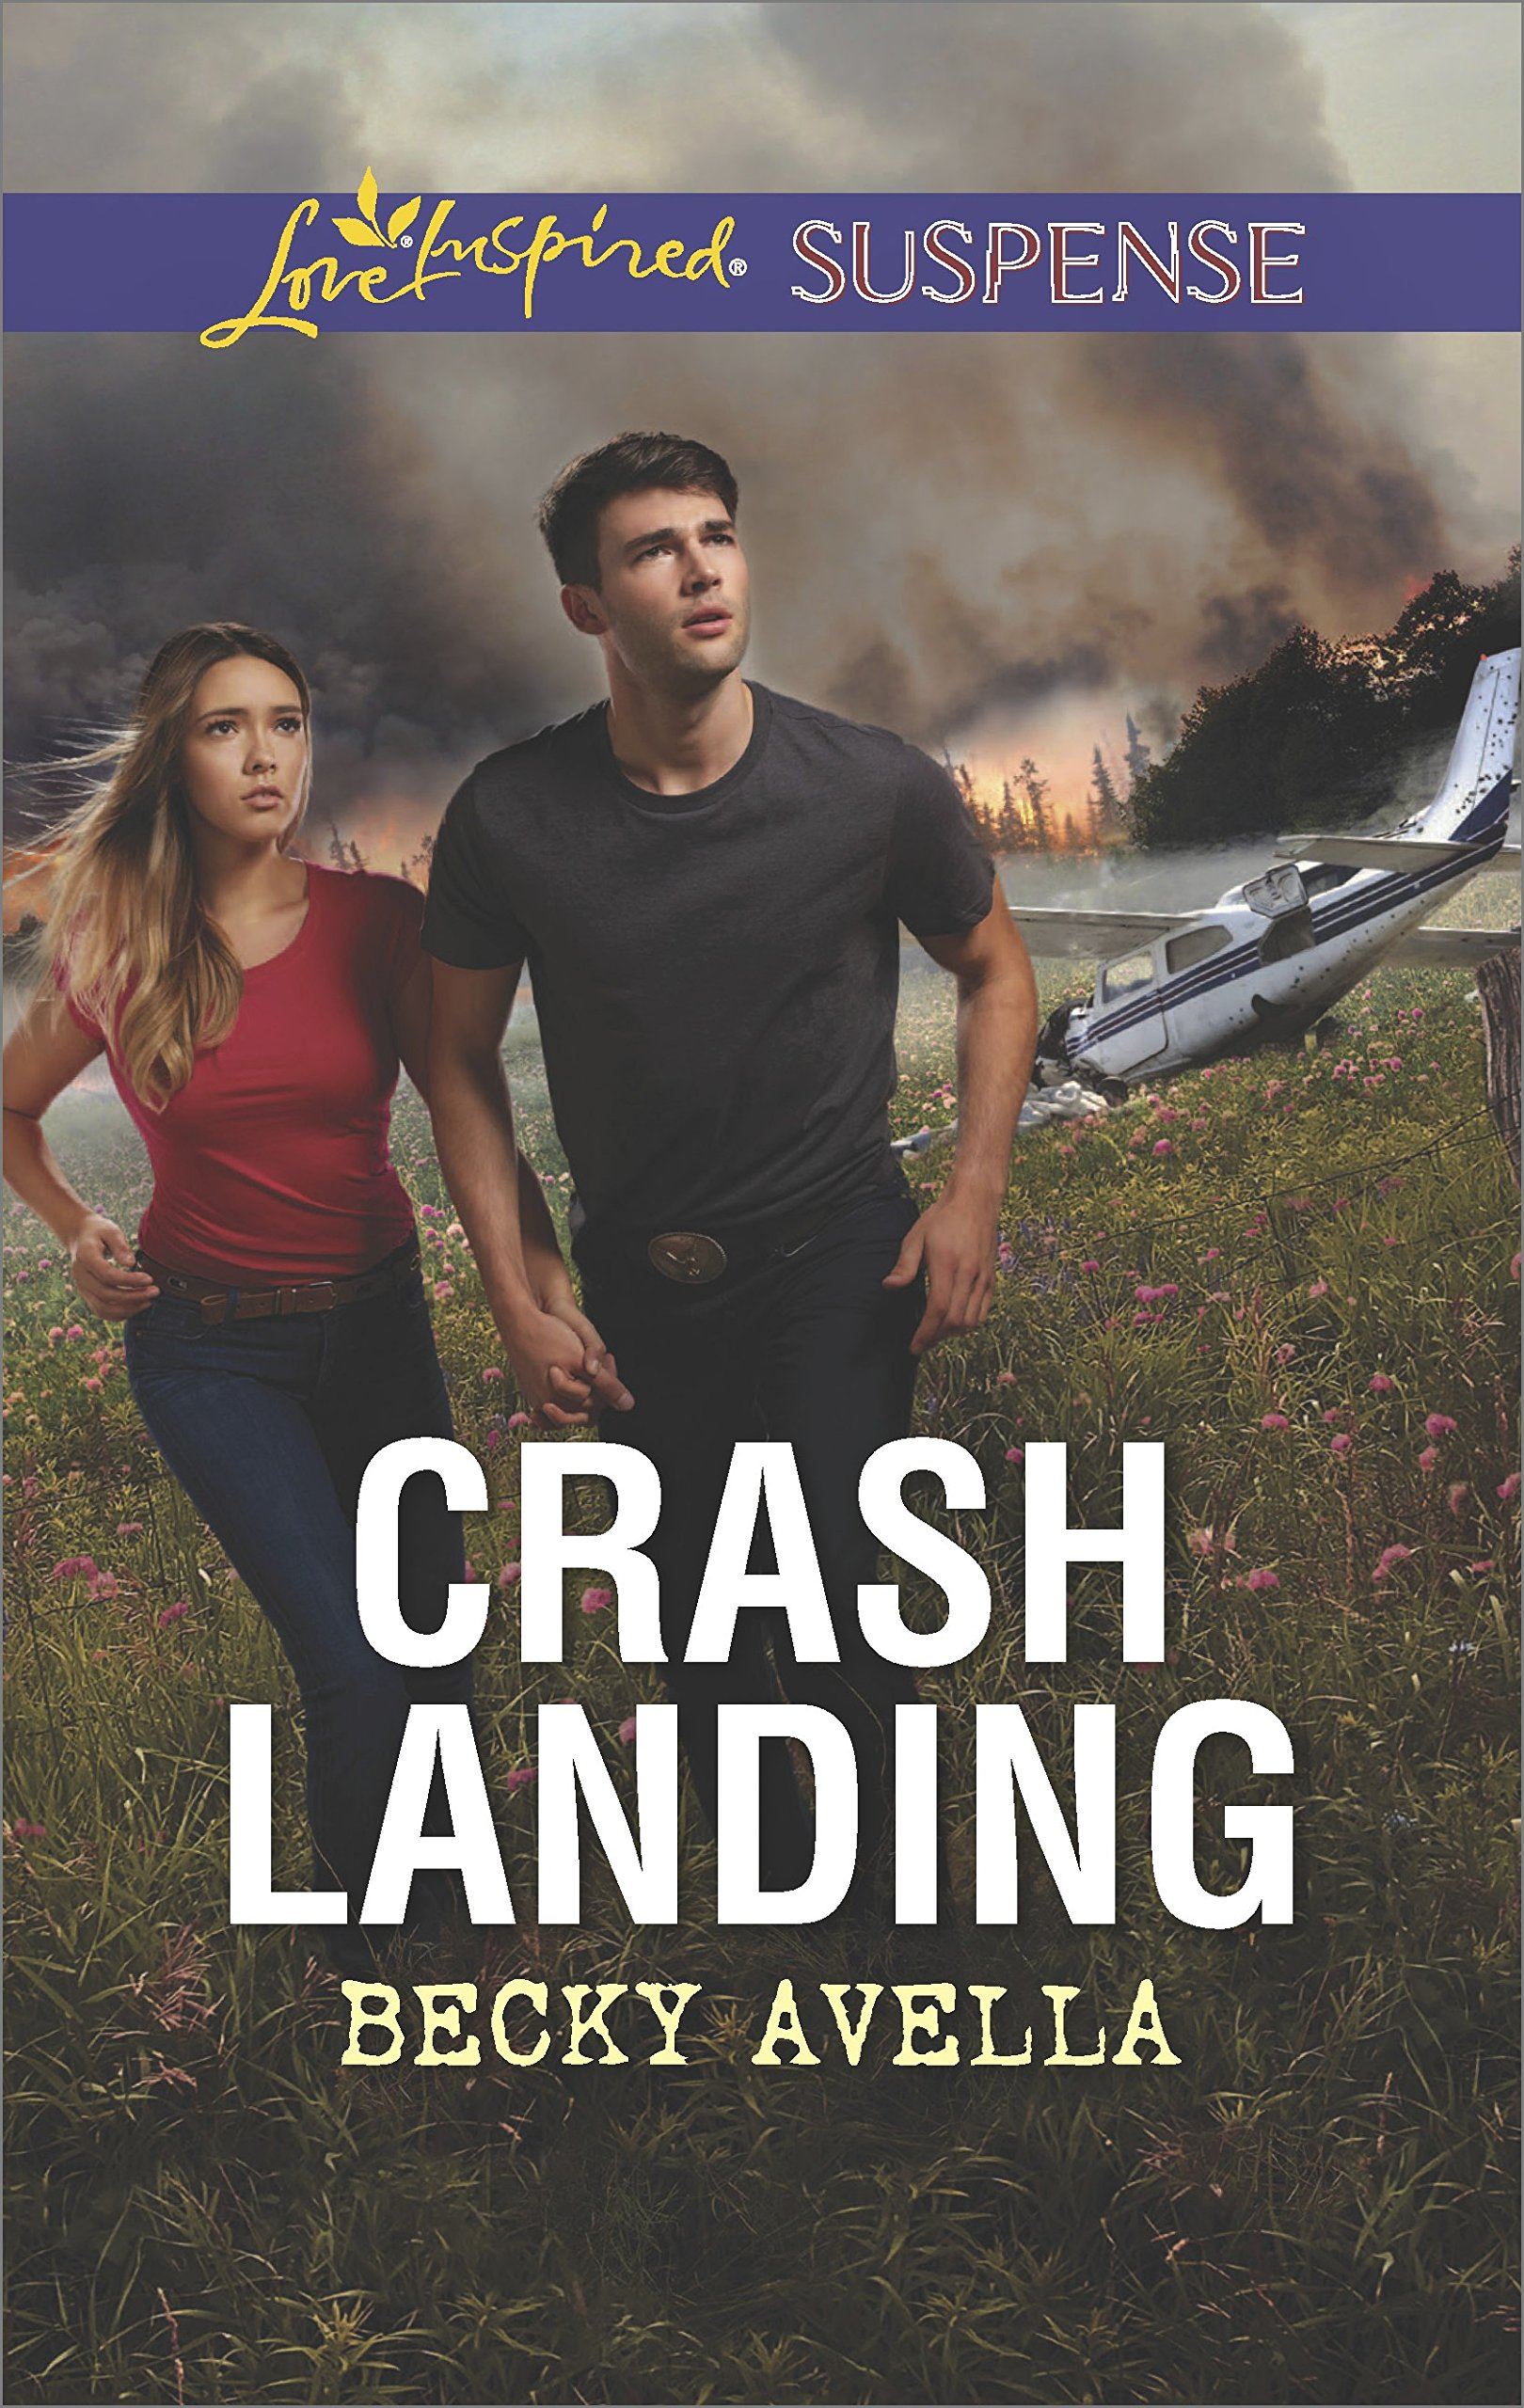 Crash Landing Love Inspired Suspense product image